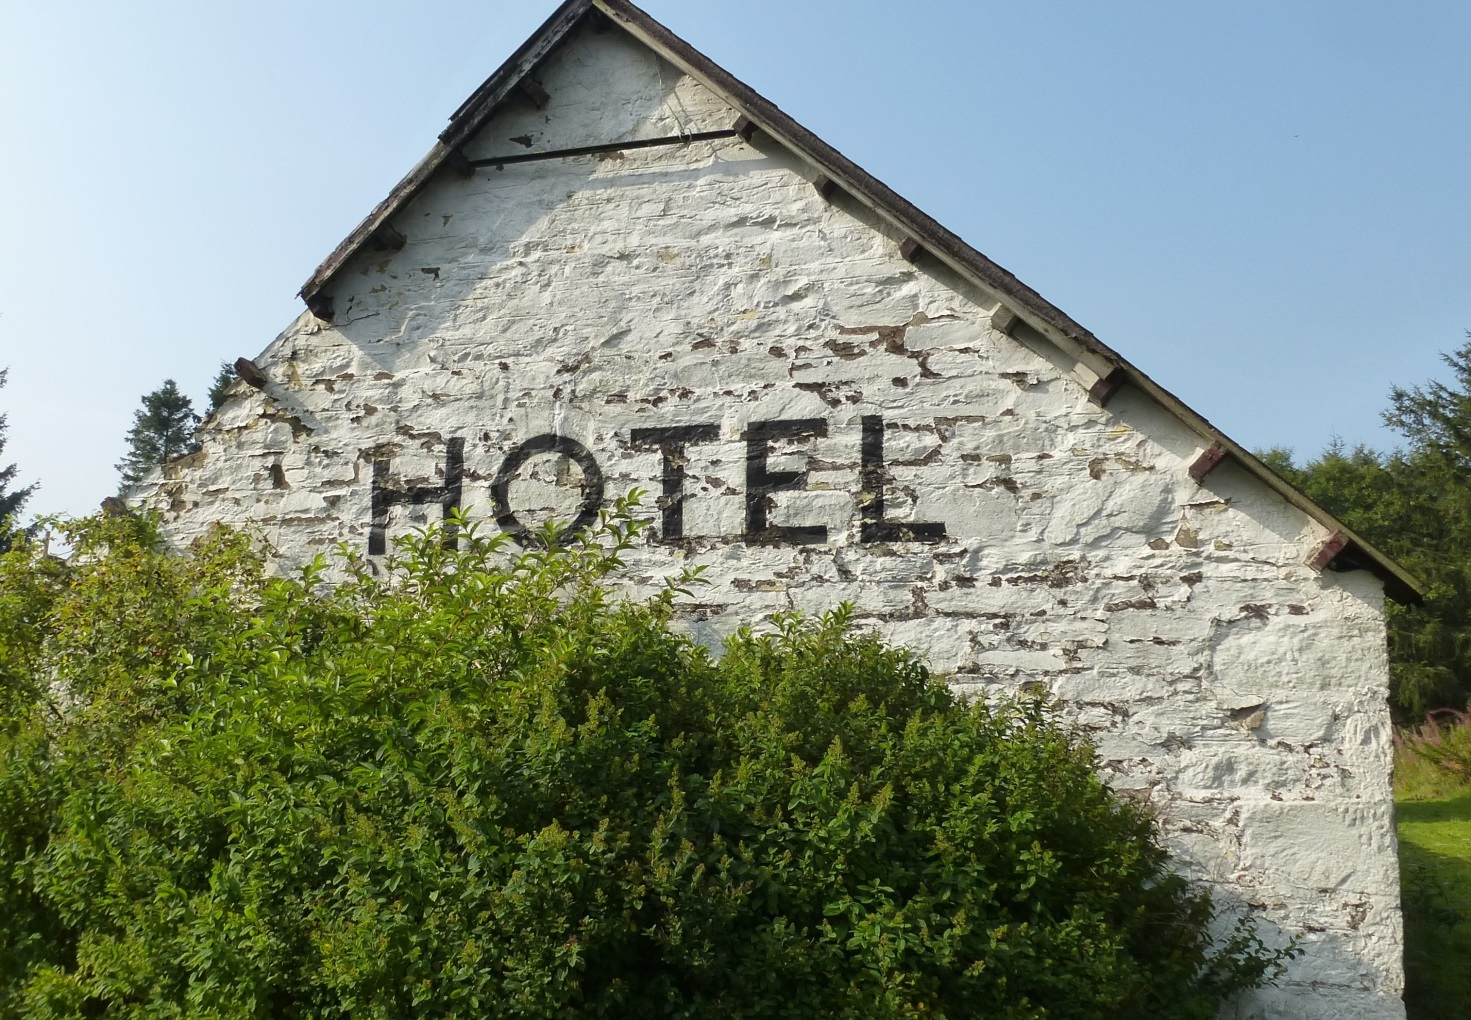 Amulree hotel sign - photo credit Theresa Mackay